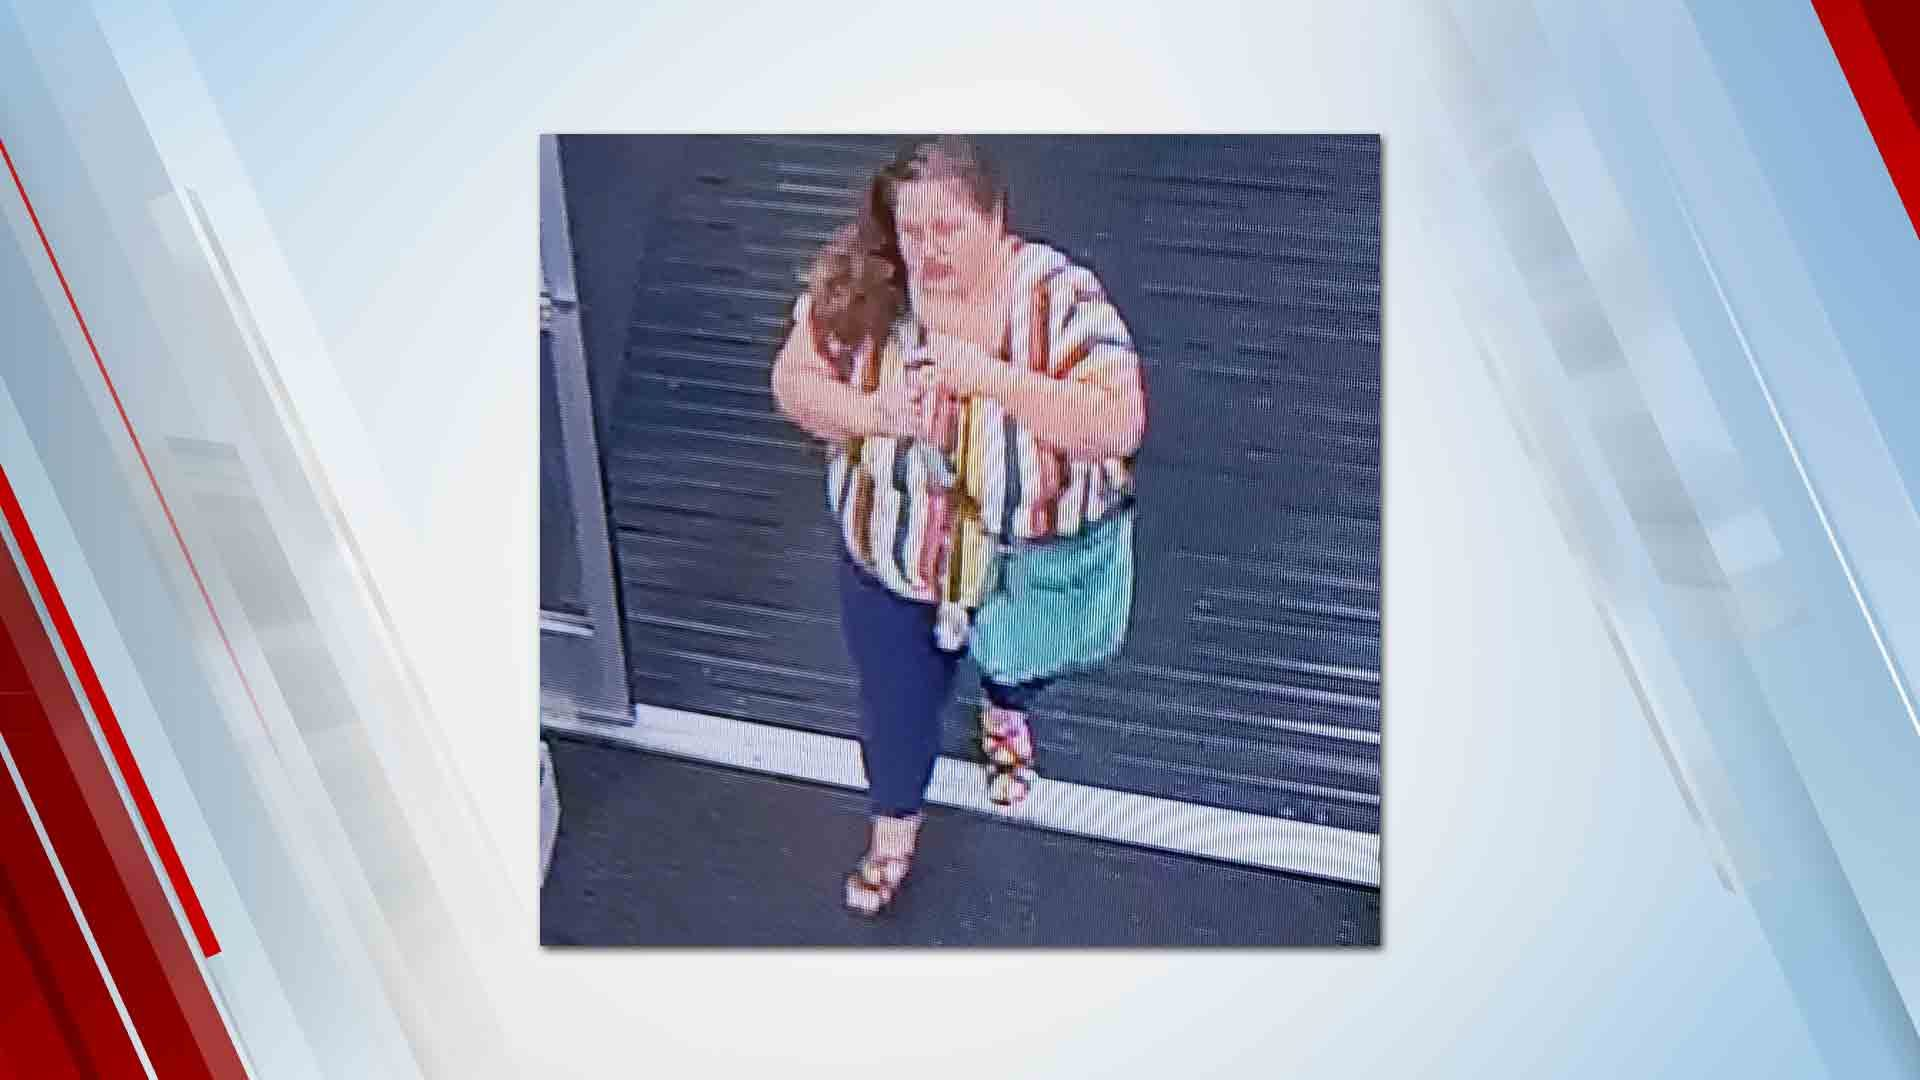 Woman Sought After Credit Cards Stolen From Tulsa Gym Locker